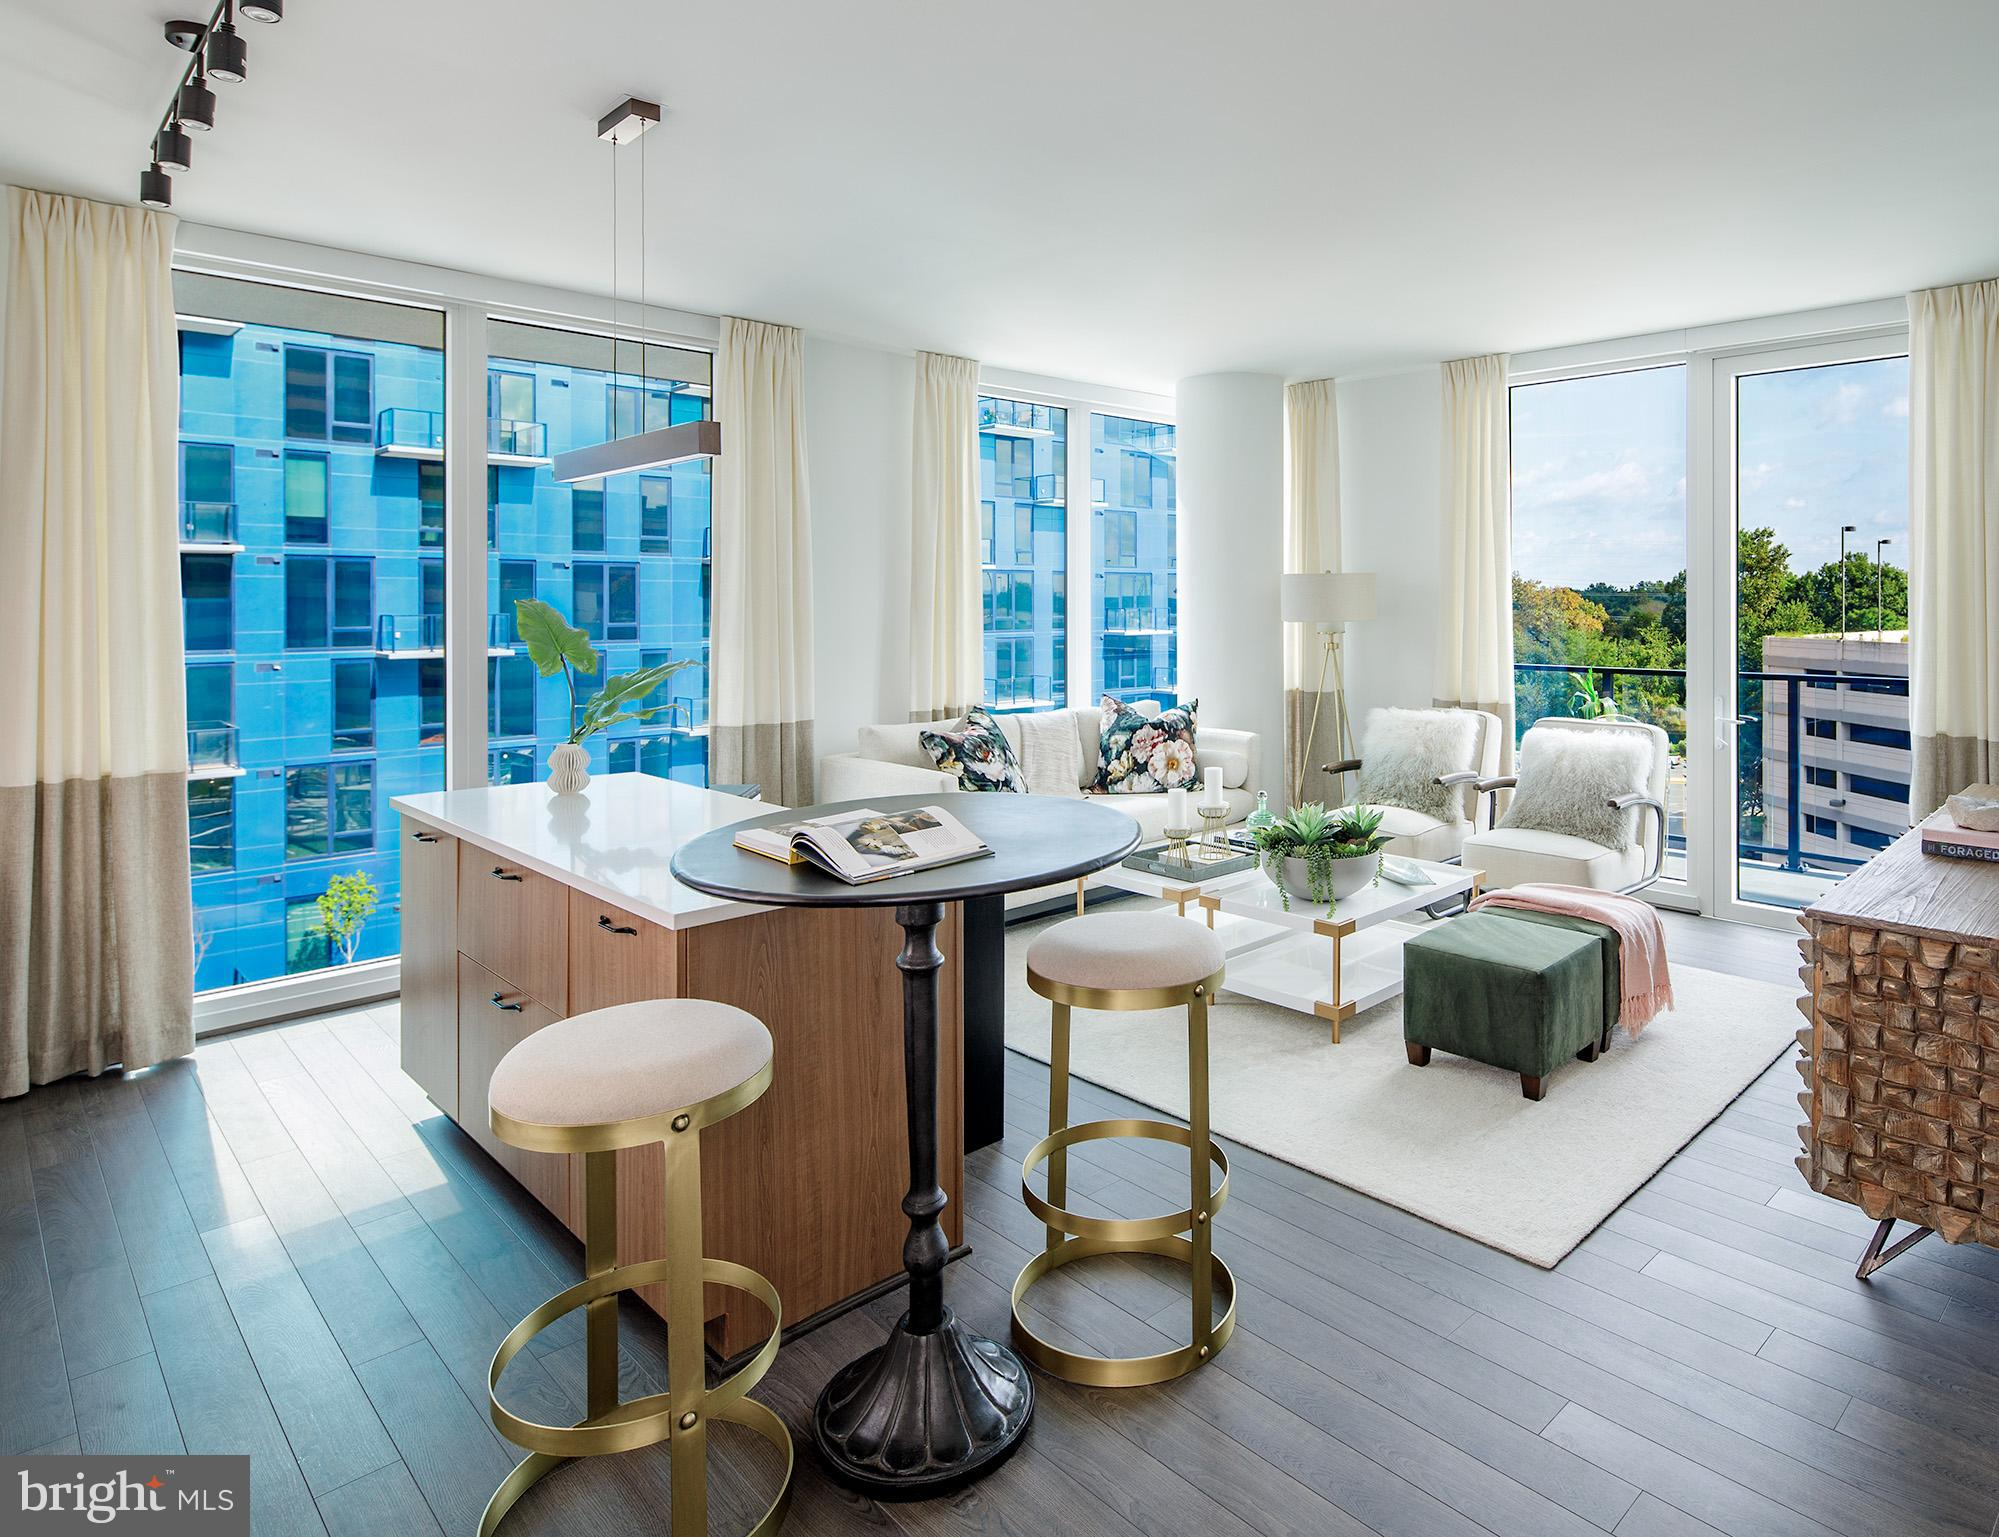 Say hello to brilliant living at Exo, kaleidoscopic Reston residences that light up your lifestyle. Embrace the spectrum of options with a vibrant mix of perks ~ including a meditation lawn, a vast pool and grill area, two premier penthouse lounges, and the world~s first residential building with View Dynamic Glass installed in every apartment. Vividly appointed with forward-thinking finishes that let you shine, Exo~s sophisticated homes let you to live in full color.